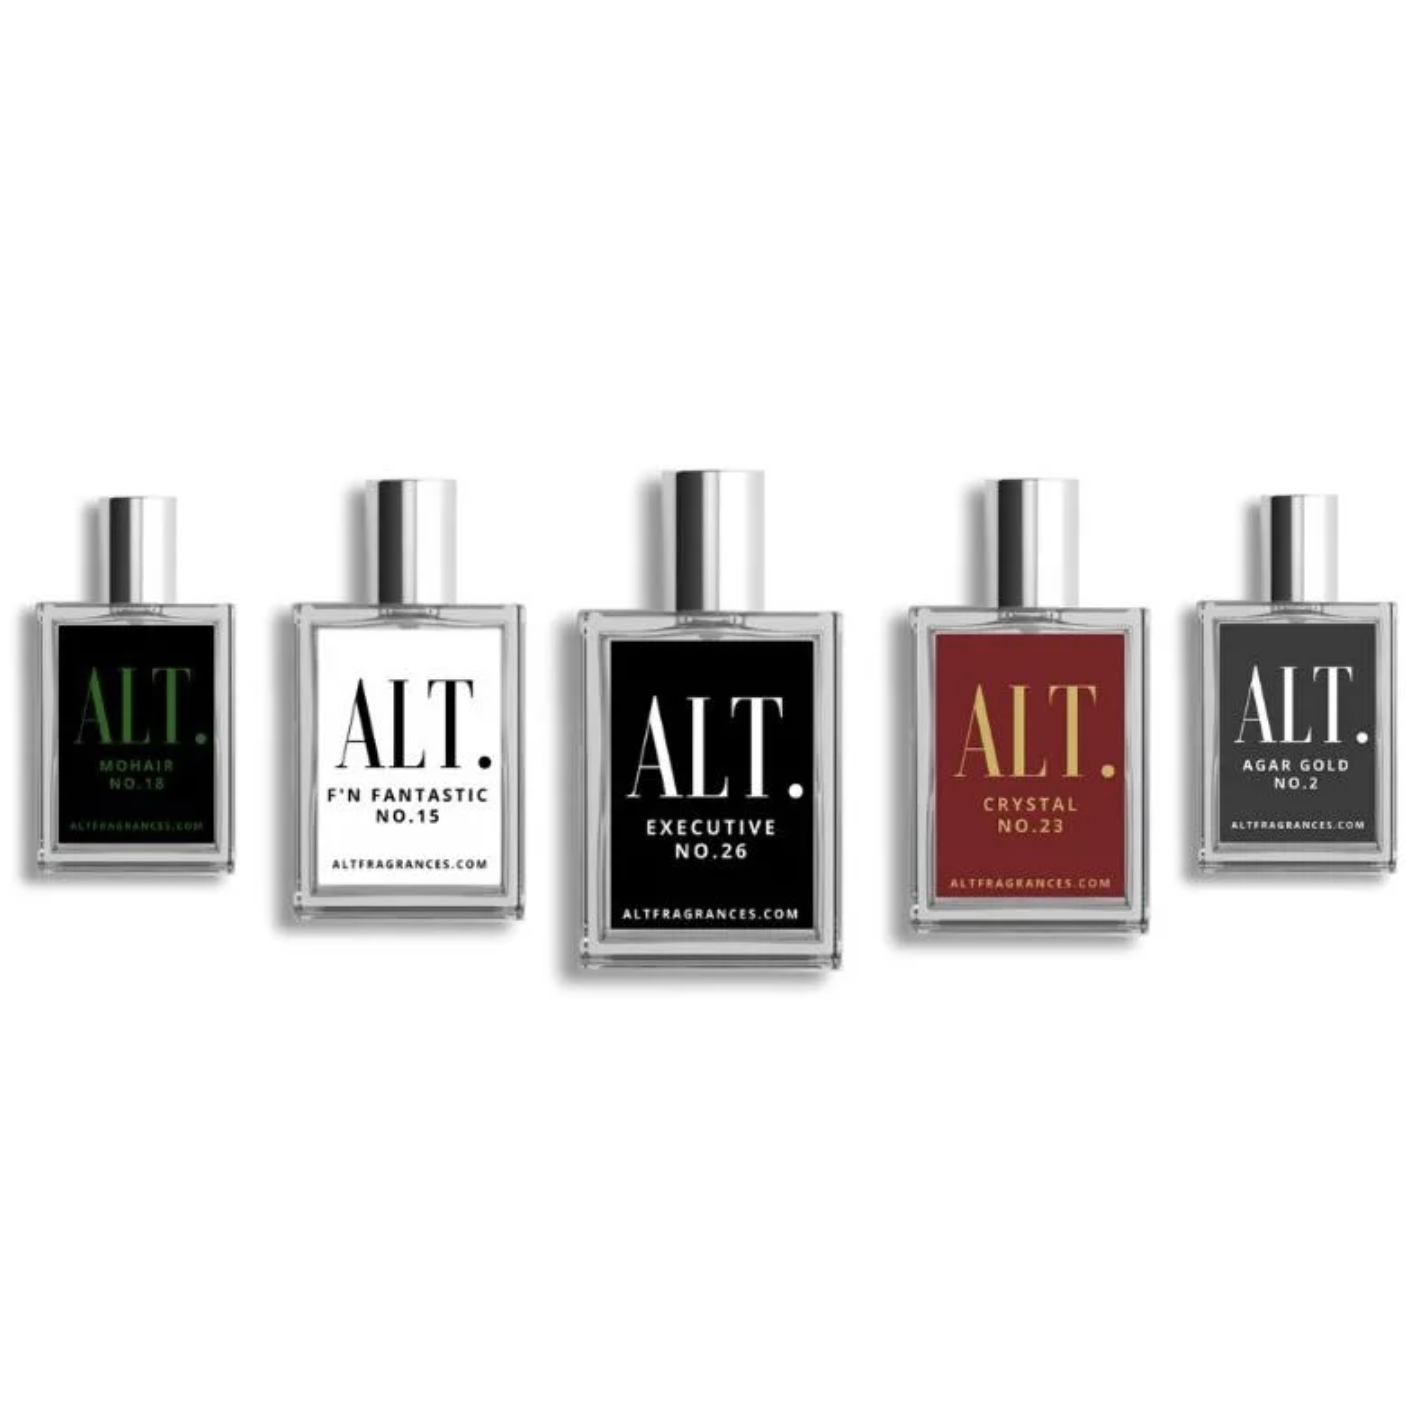 Mason Gatsby Talks about His Company, Current Work and the New Brand Promotion for ALT.Fragrances